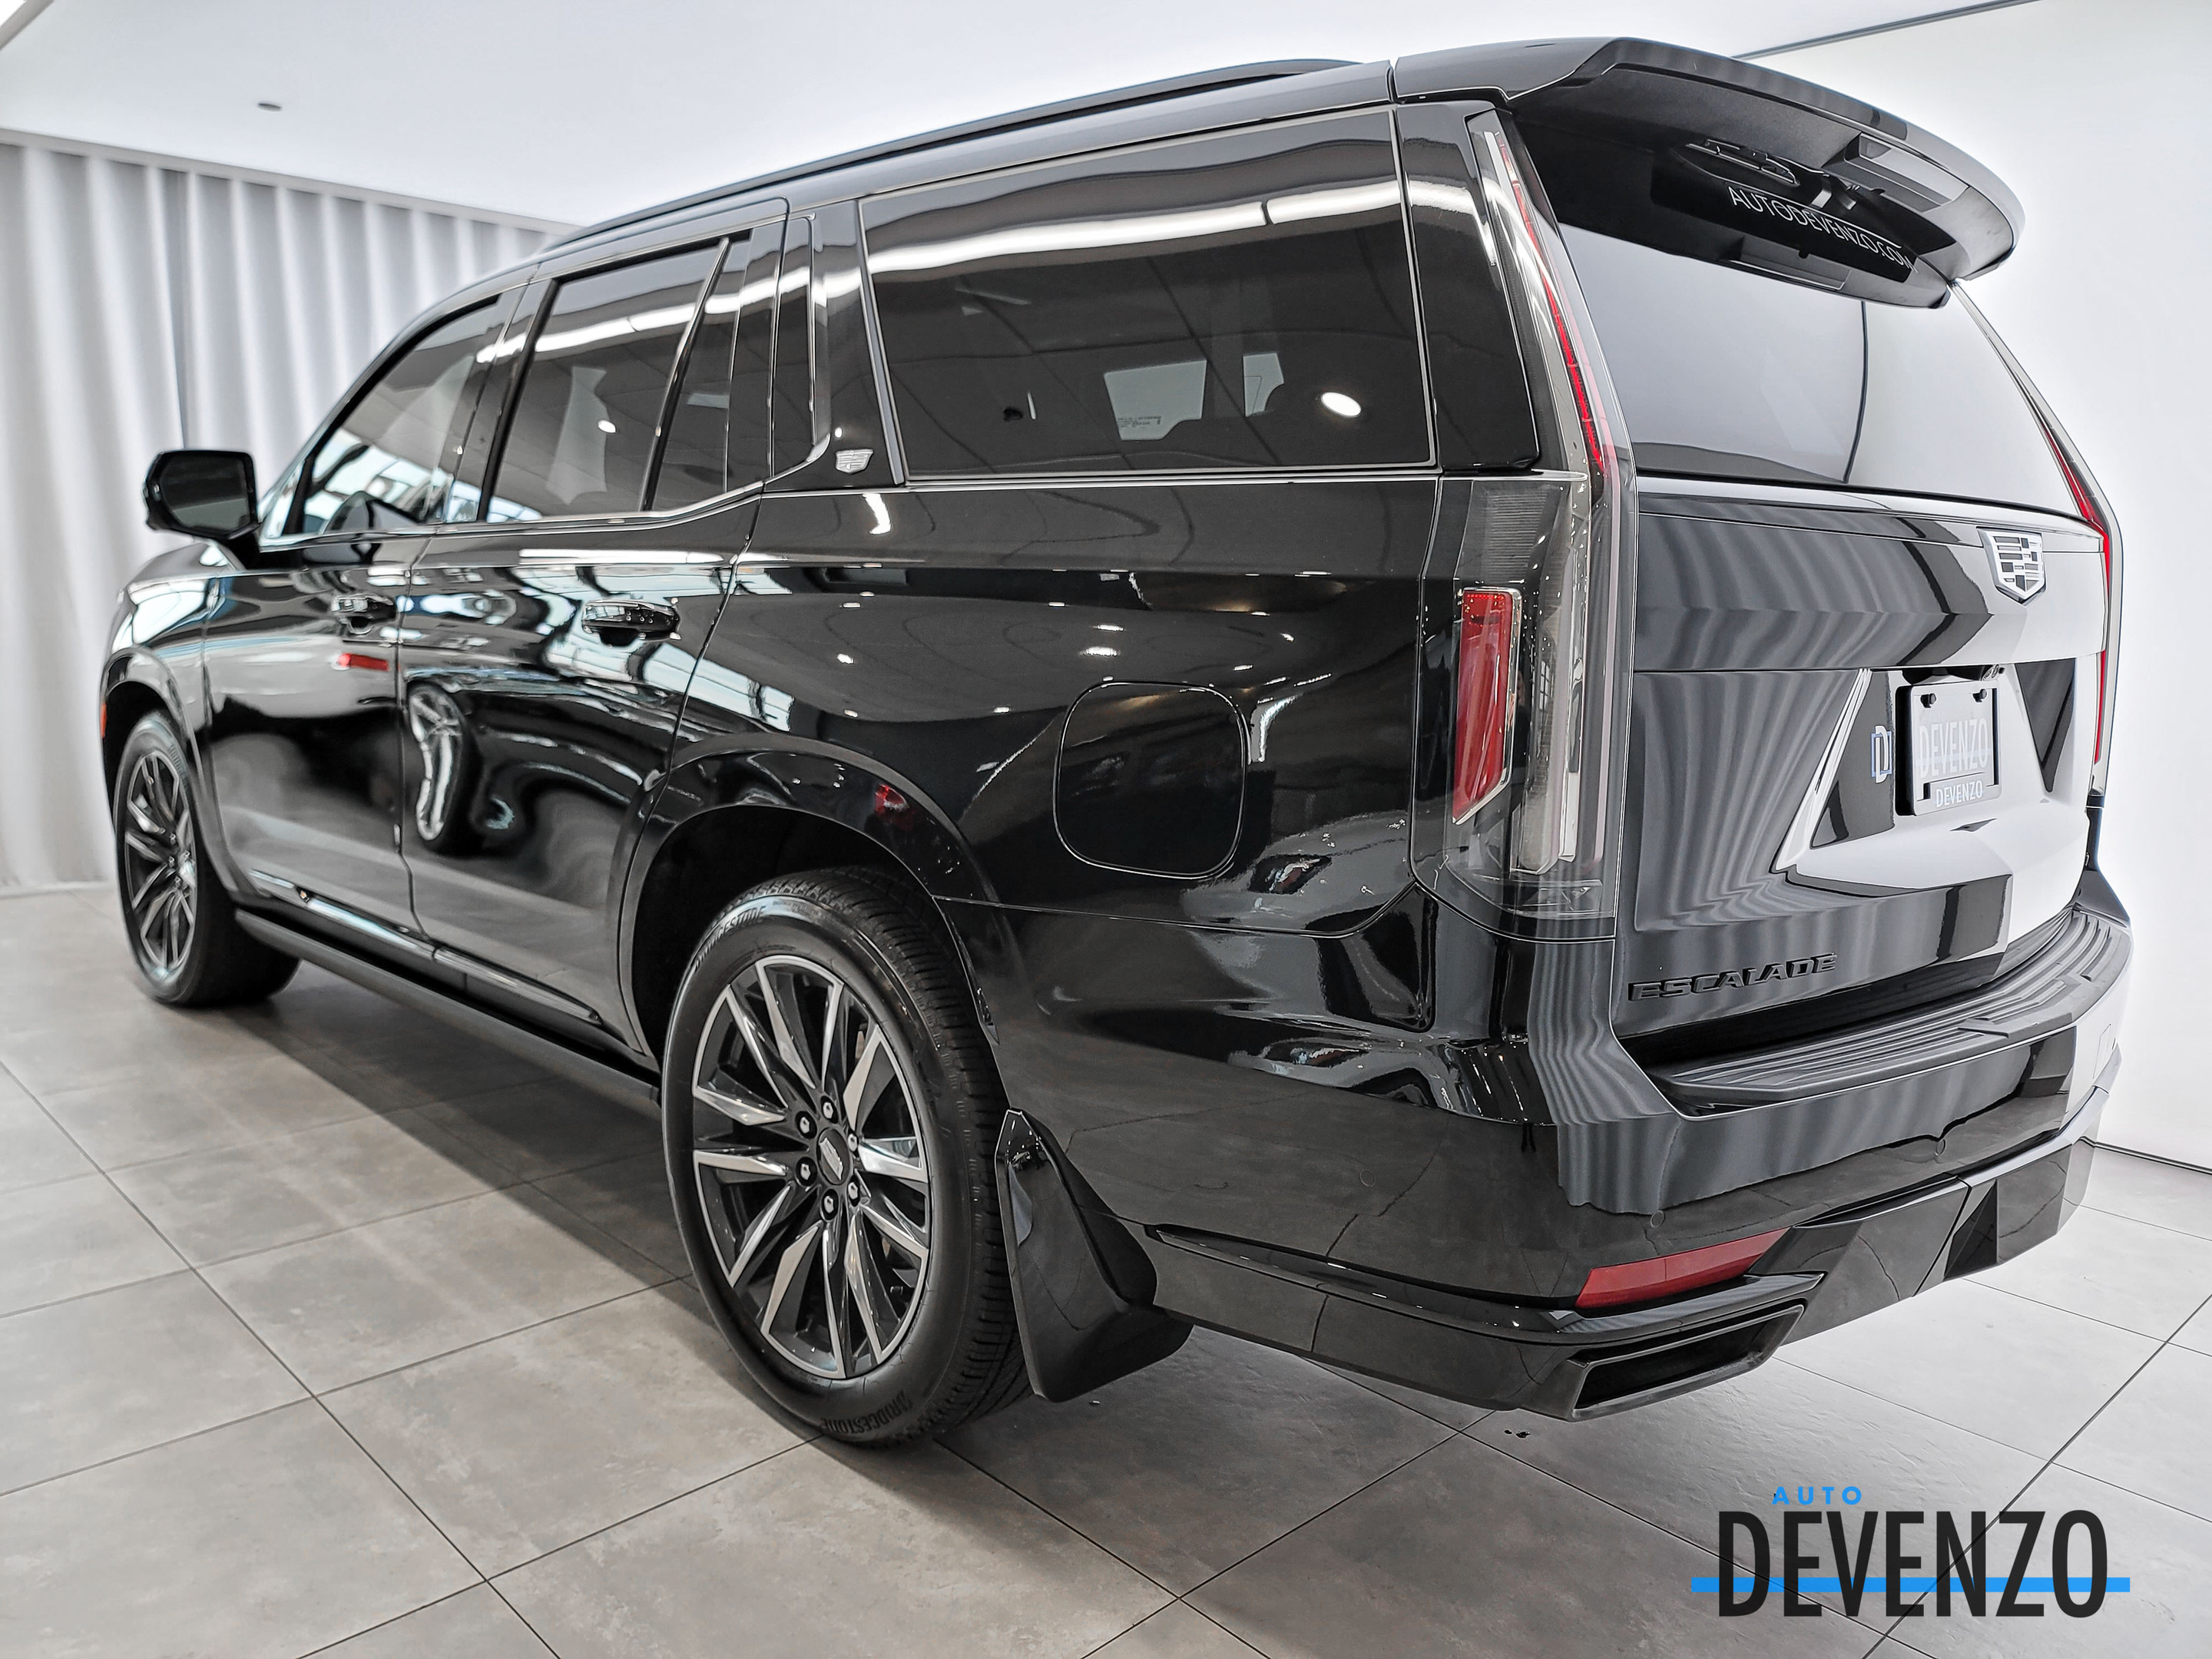 2021 Cadillac Escalade 4WD Sport Platinum DVD / SuperCruise / NightView complet